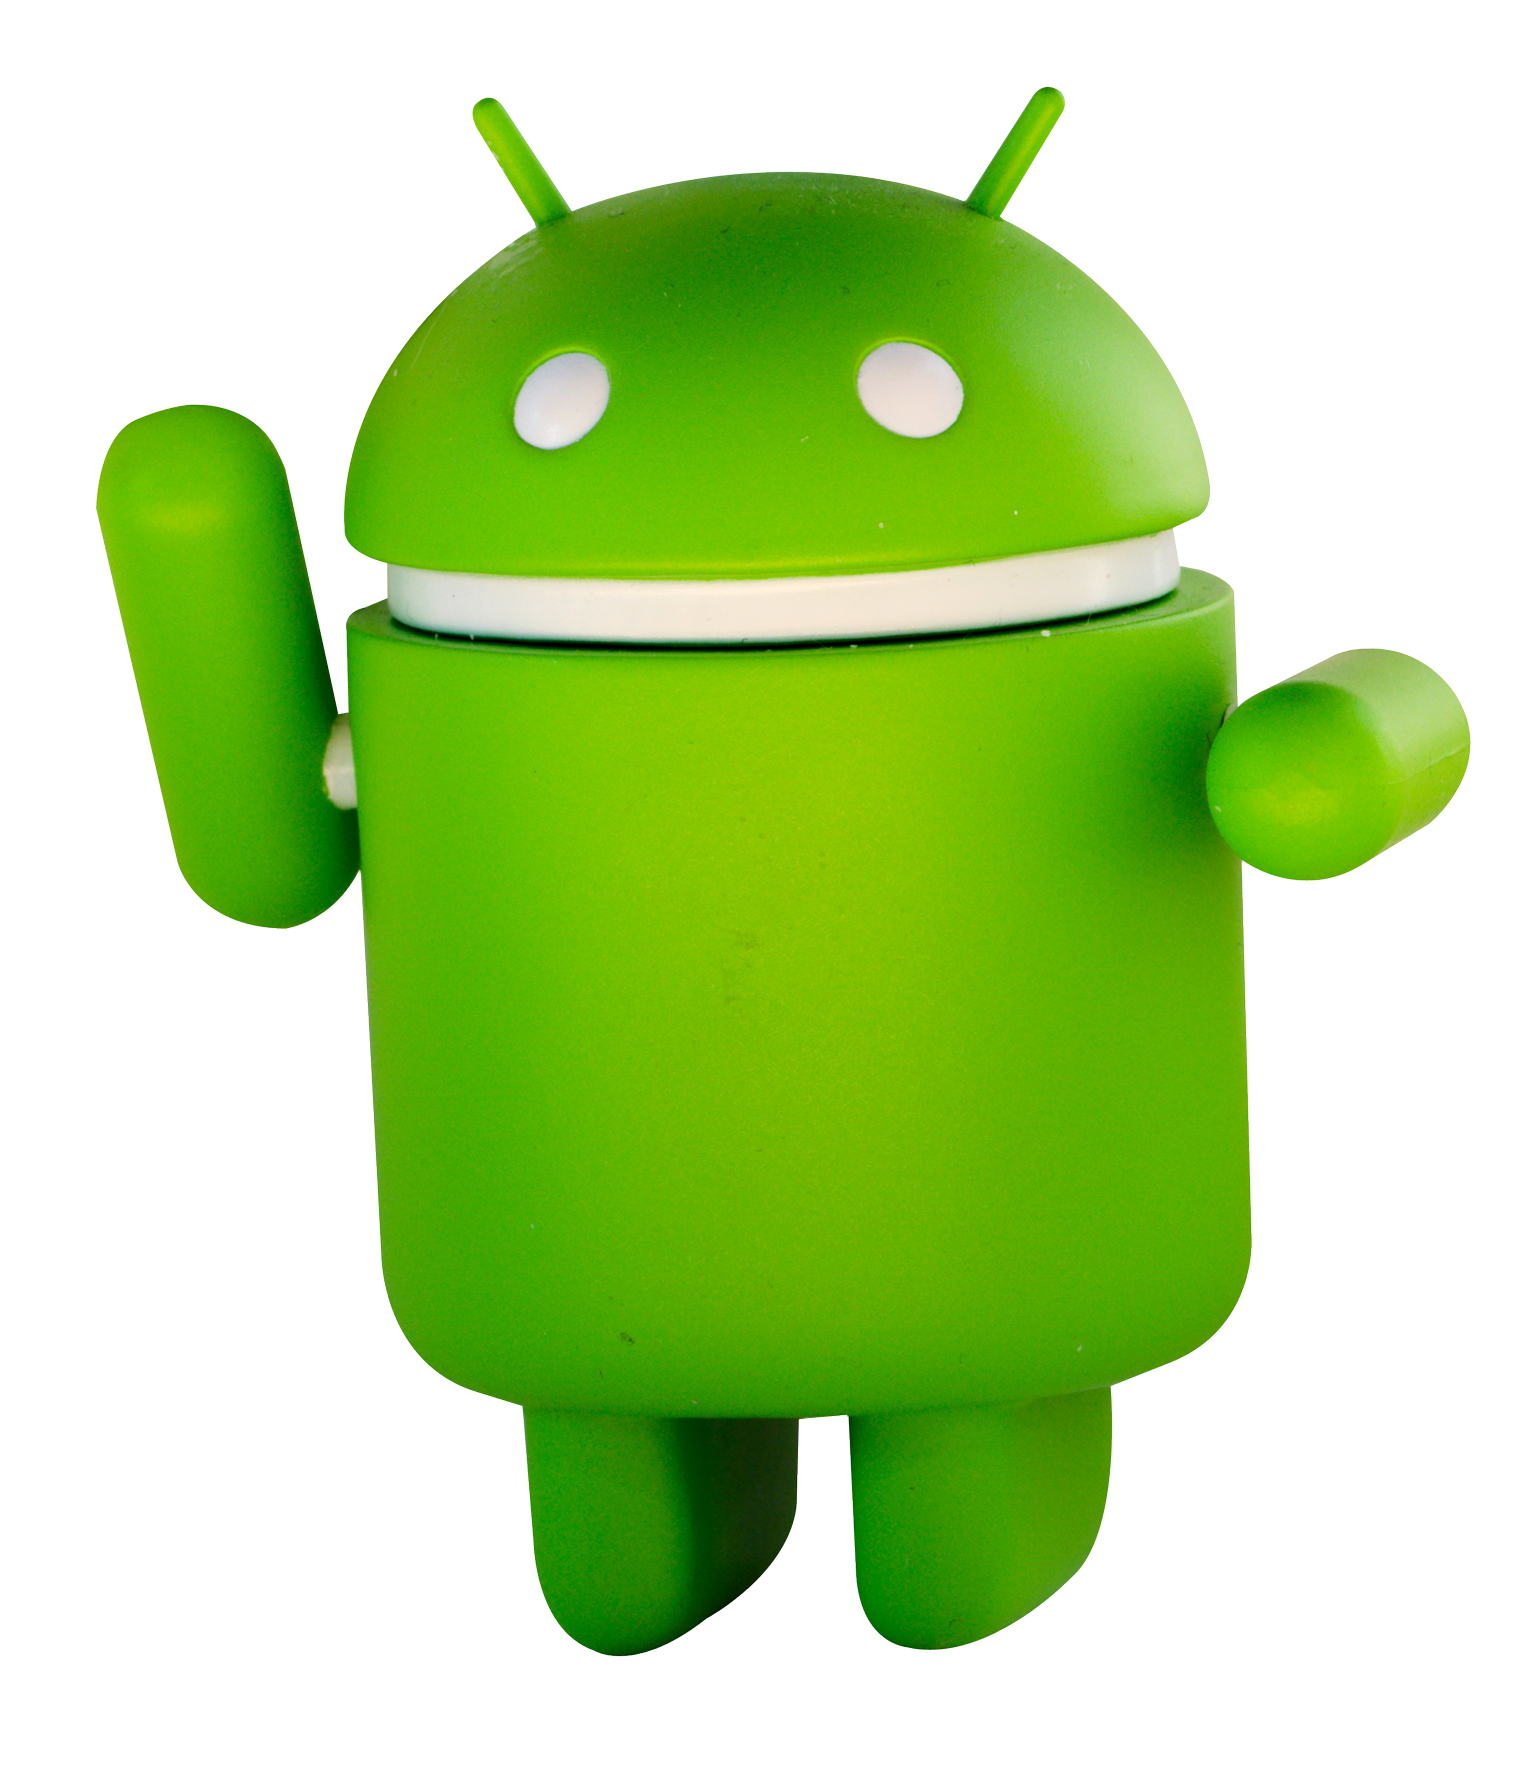 Android PNG - 23010